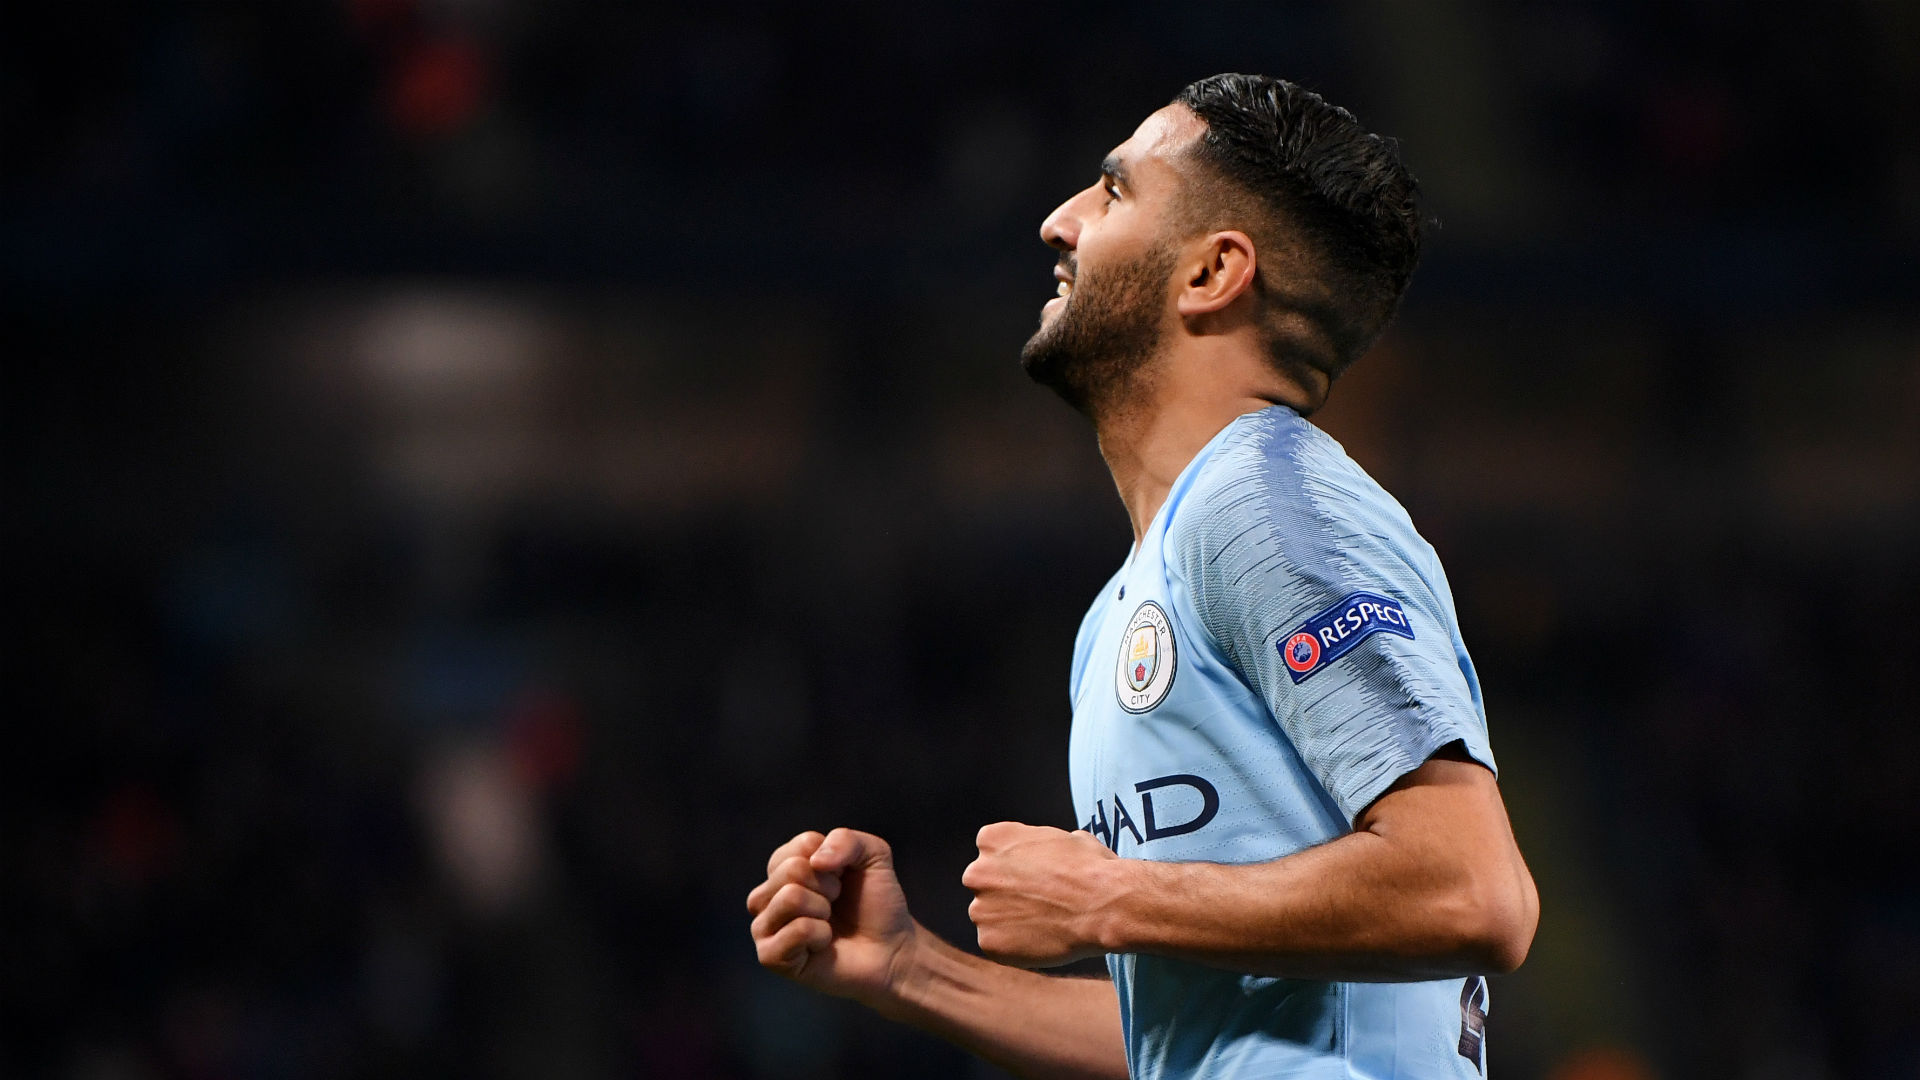 Manchester City's Mahrez always wanted to win the Uefa Champions League